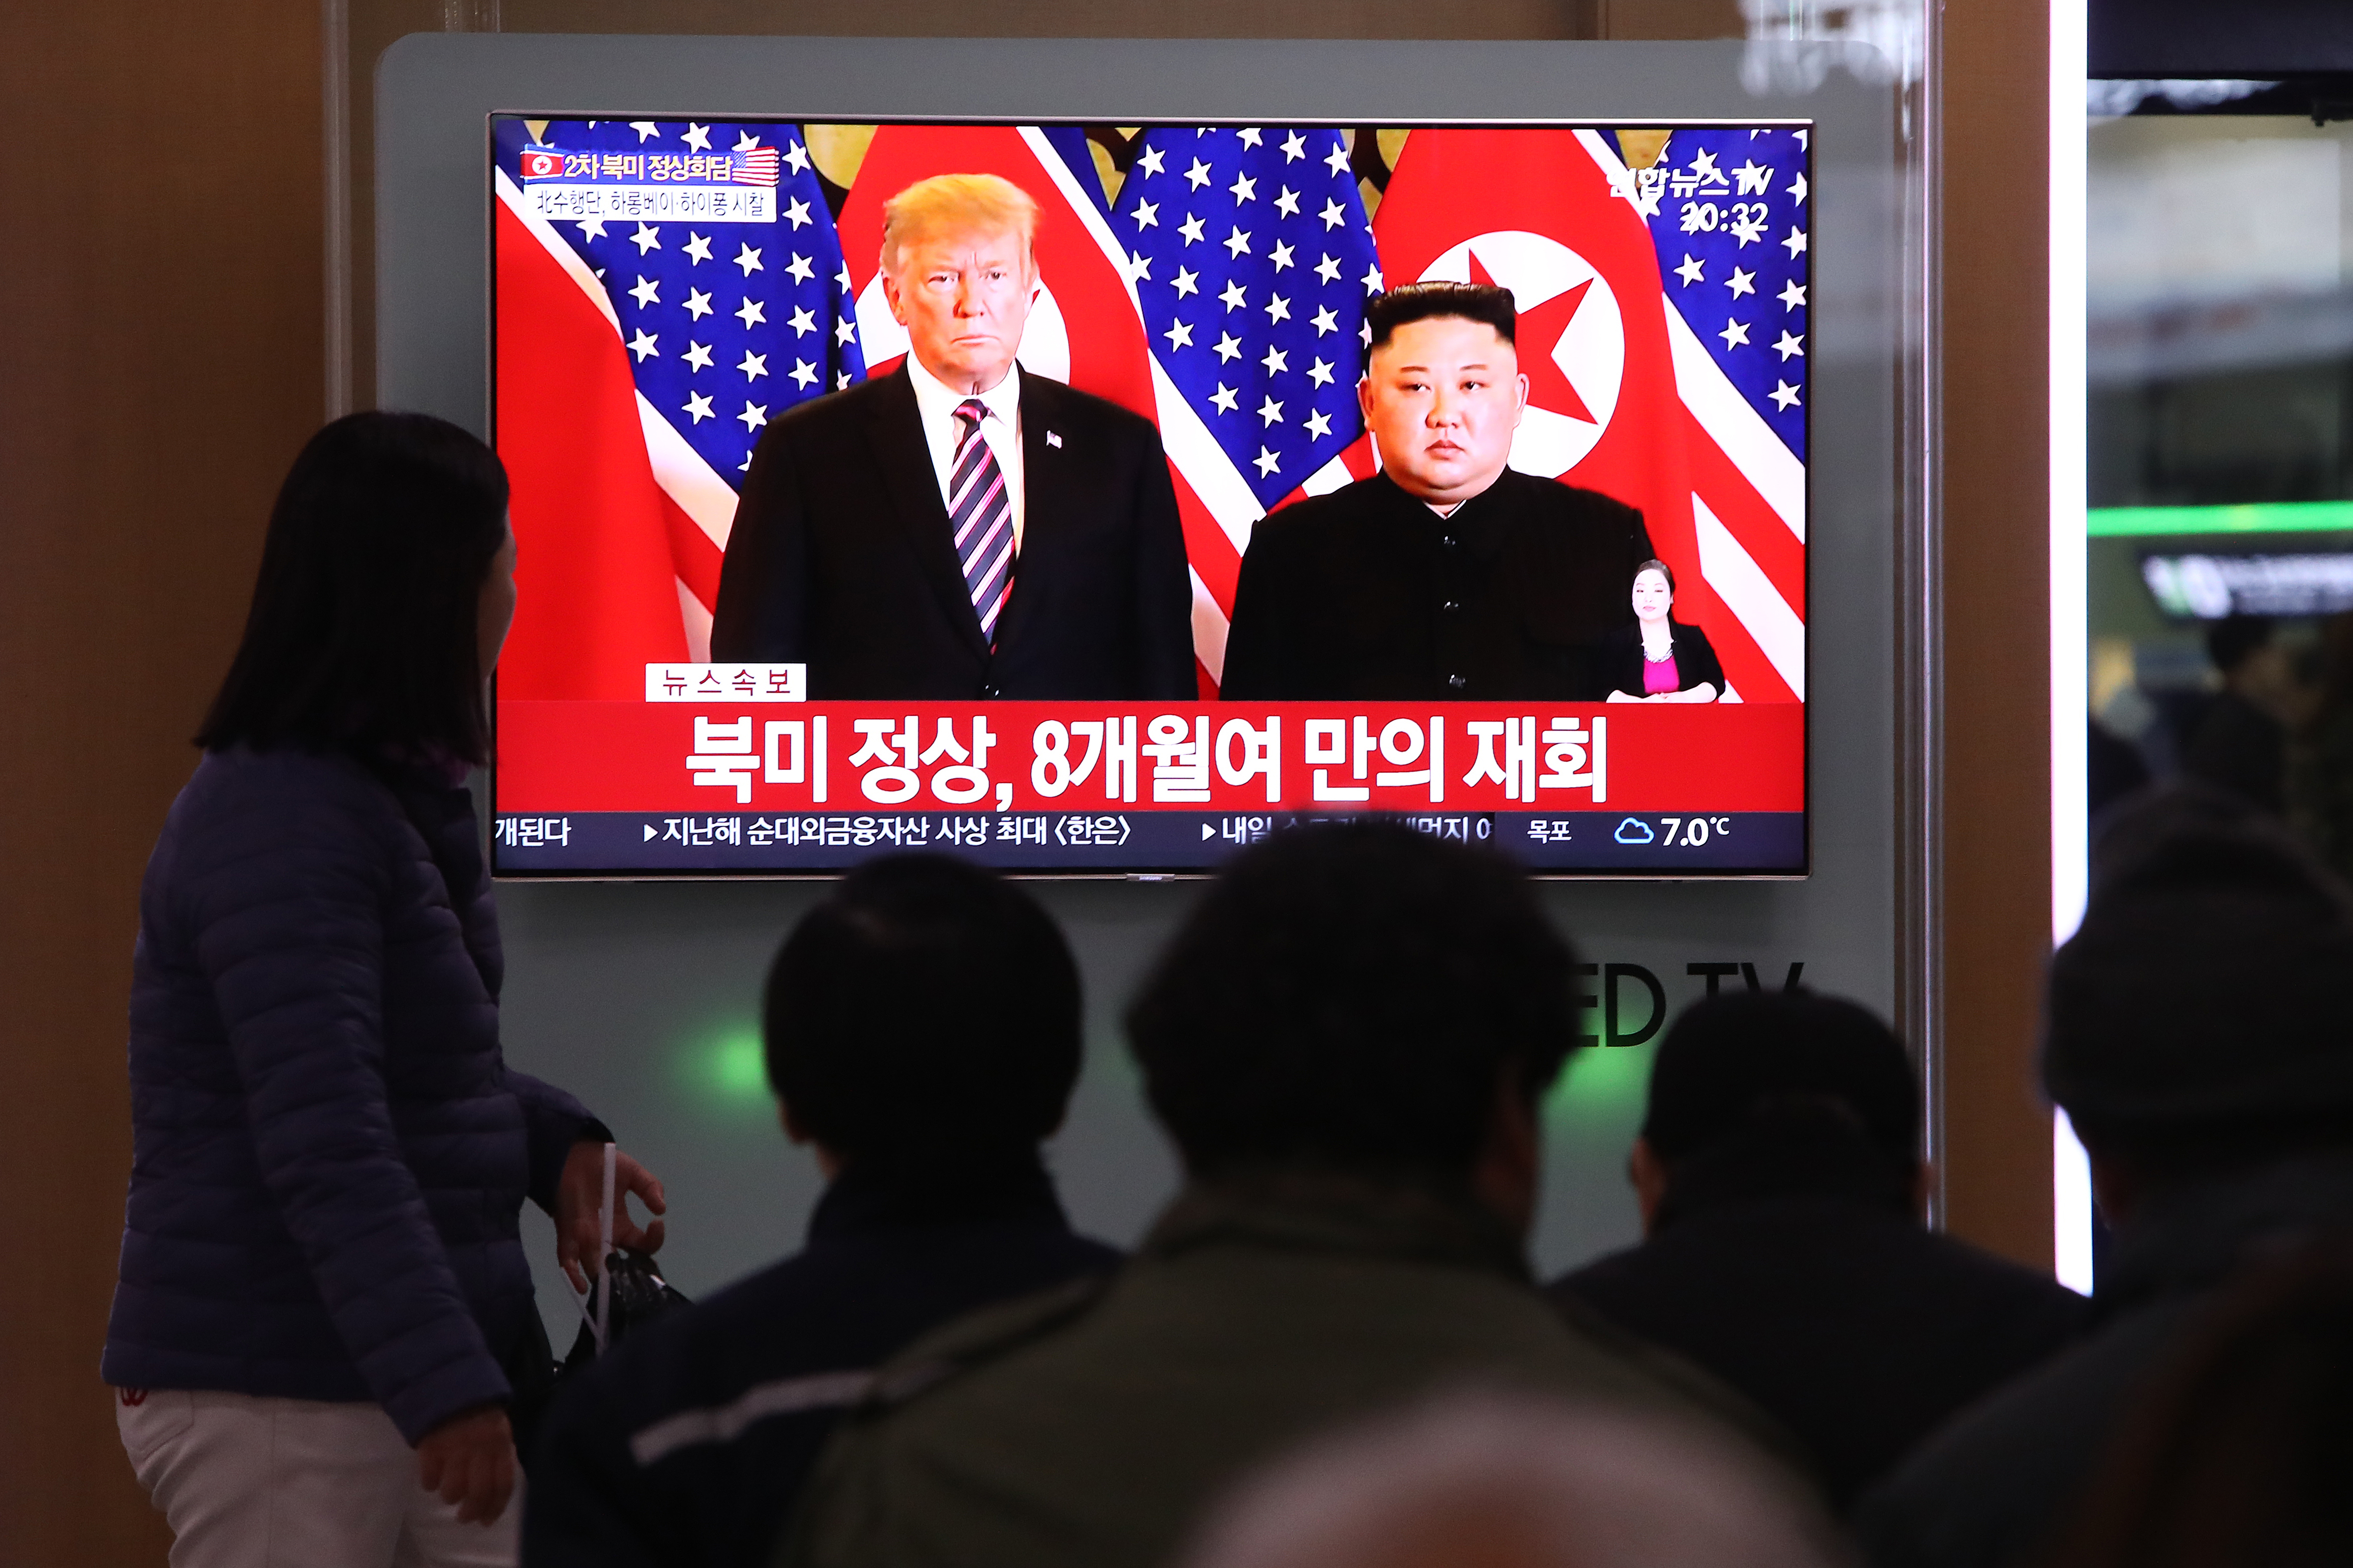 South Korean watch a screen reporting the Trump and Kim summit.